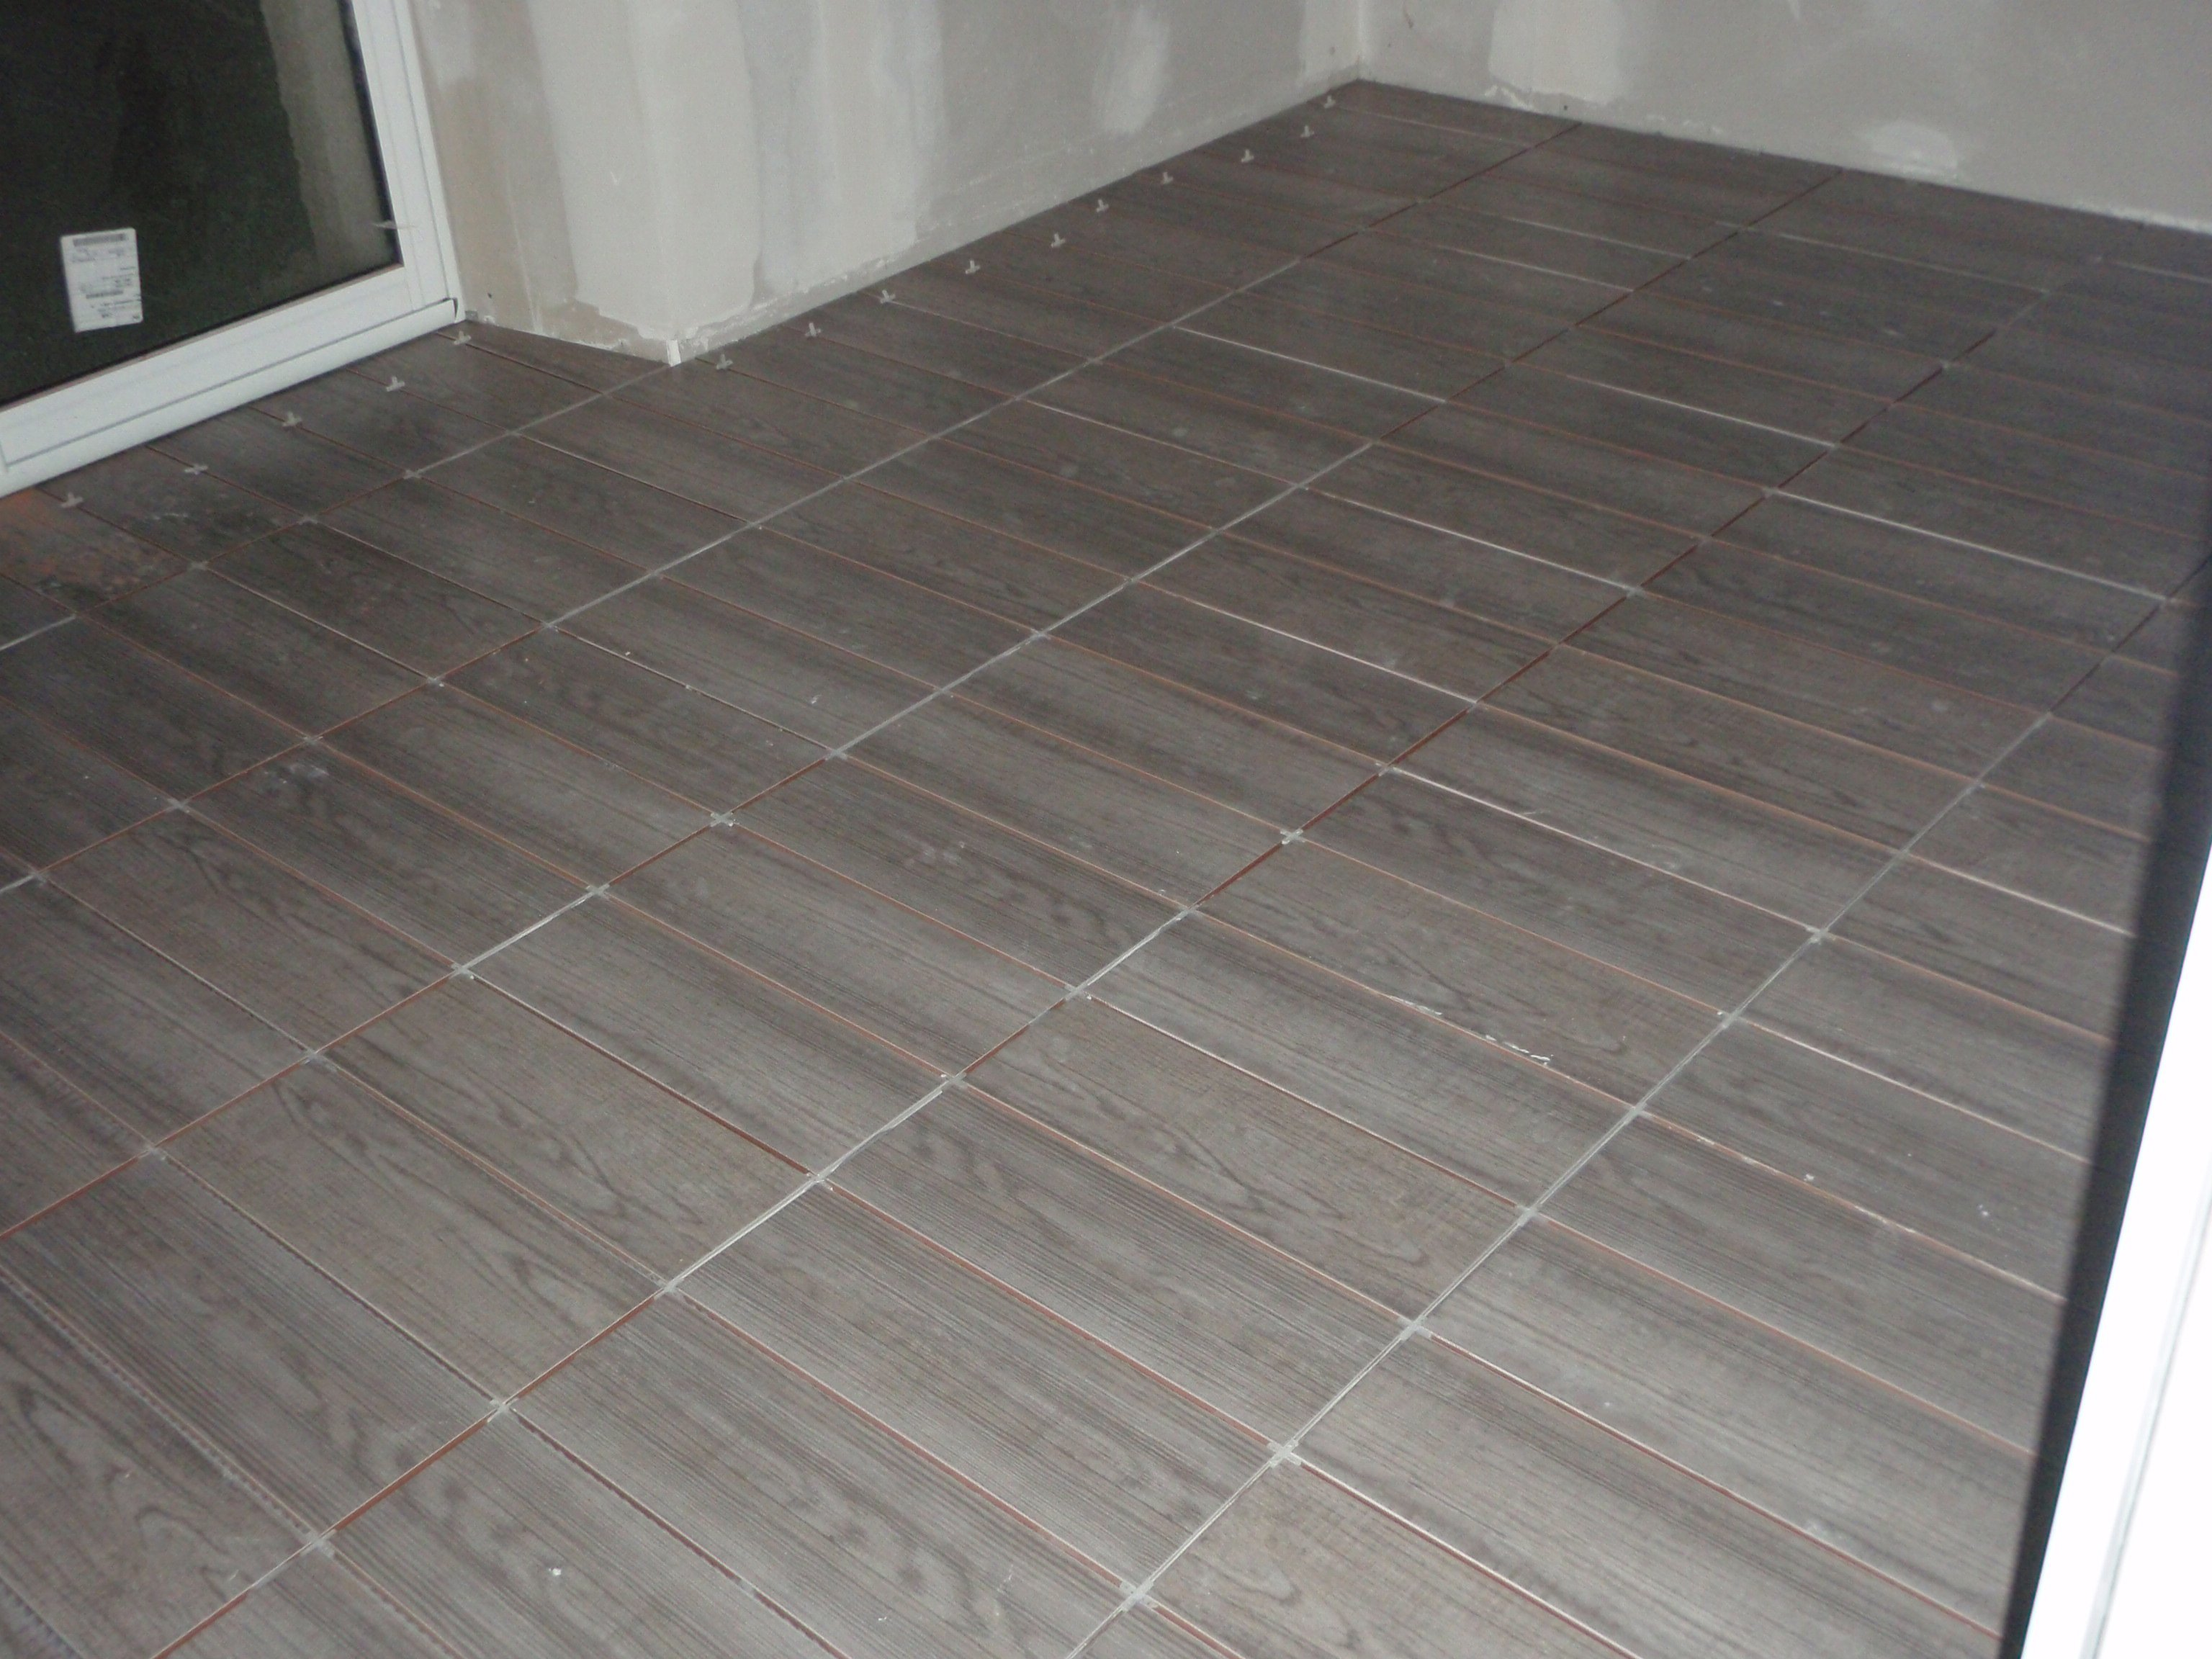 Colle carrelage pour mosaique prix travaux maison hyeres for Colle carrelage